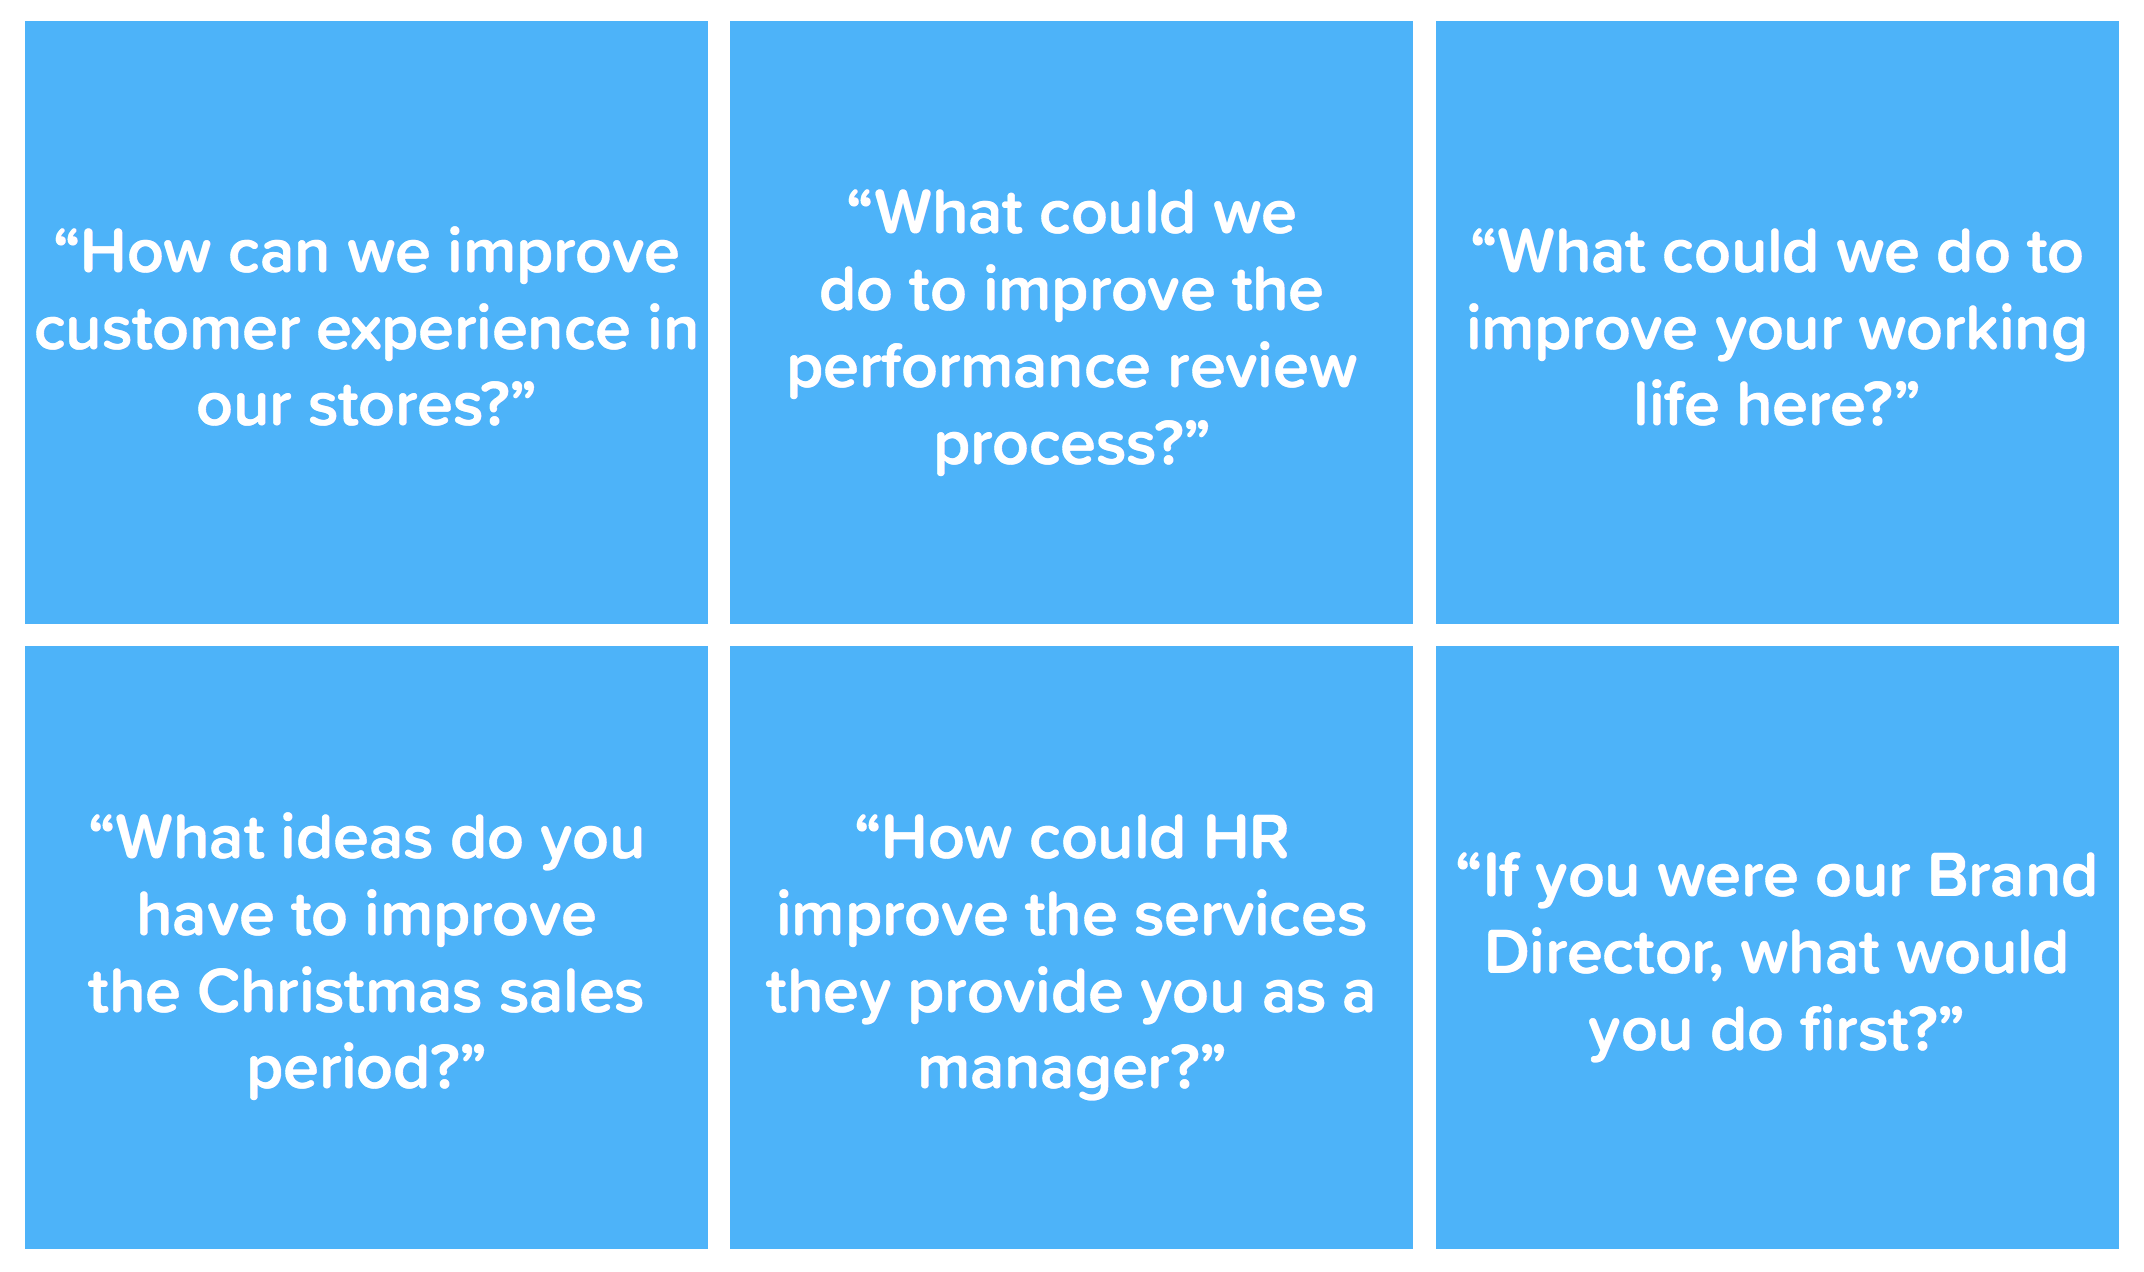 FIGURE 5: Examples of questions that can be answered with employee text feedback (Source: Andrew Marritt)